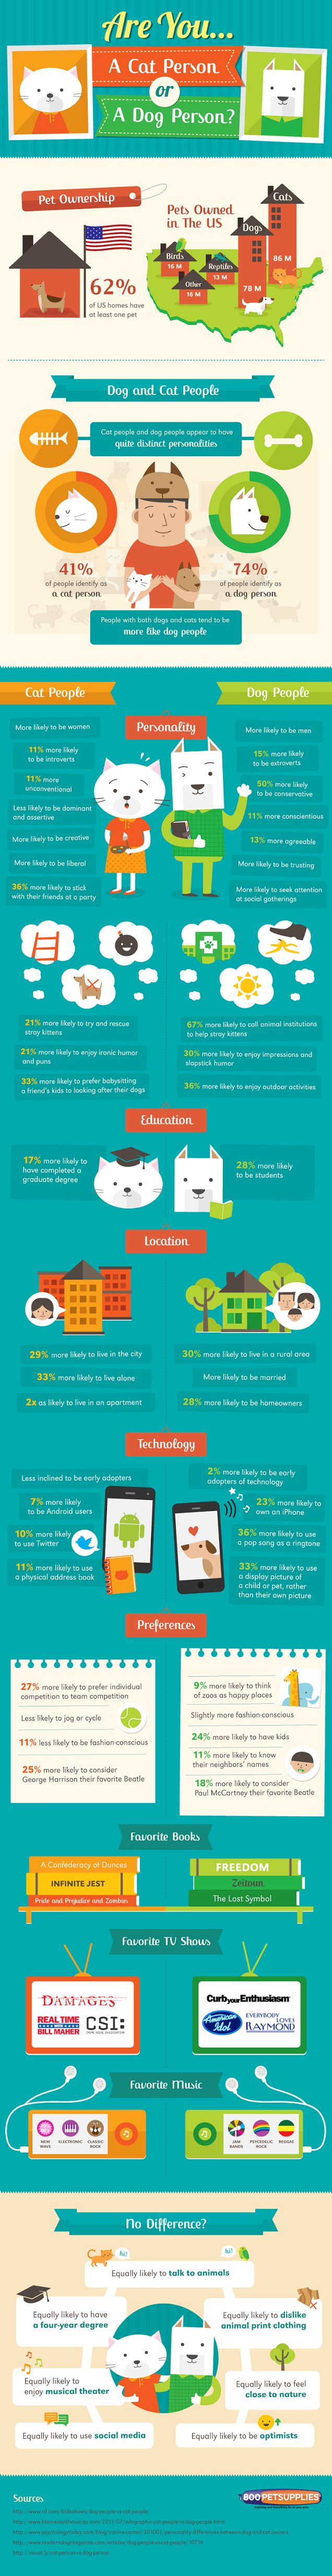 Infographic: Are You a Cat Person Or a Dog Person?